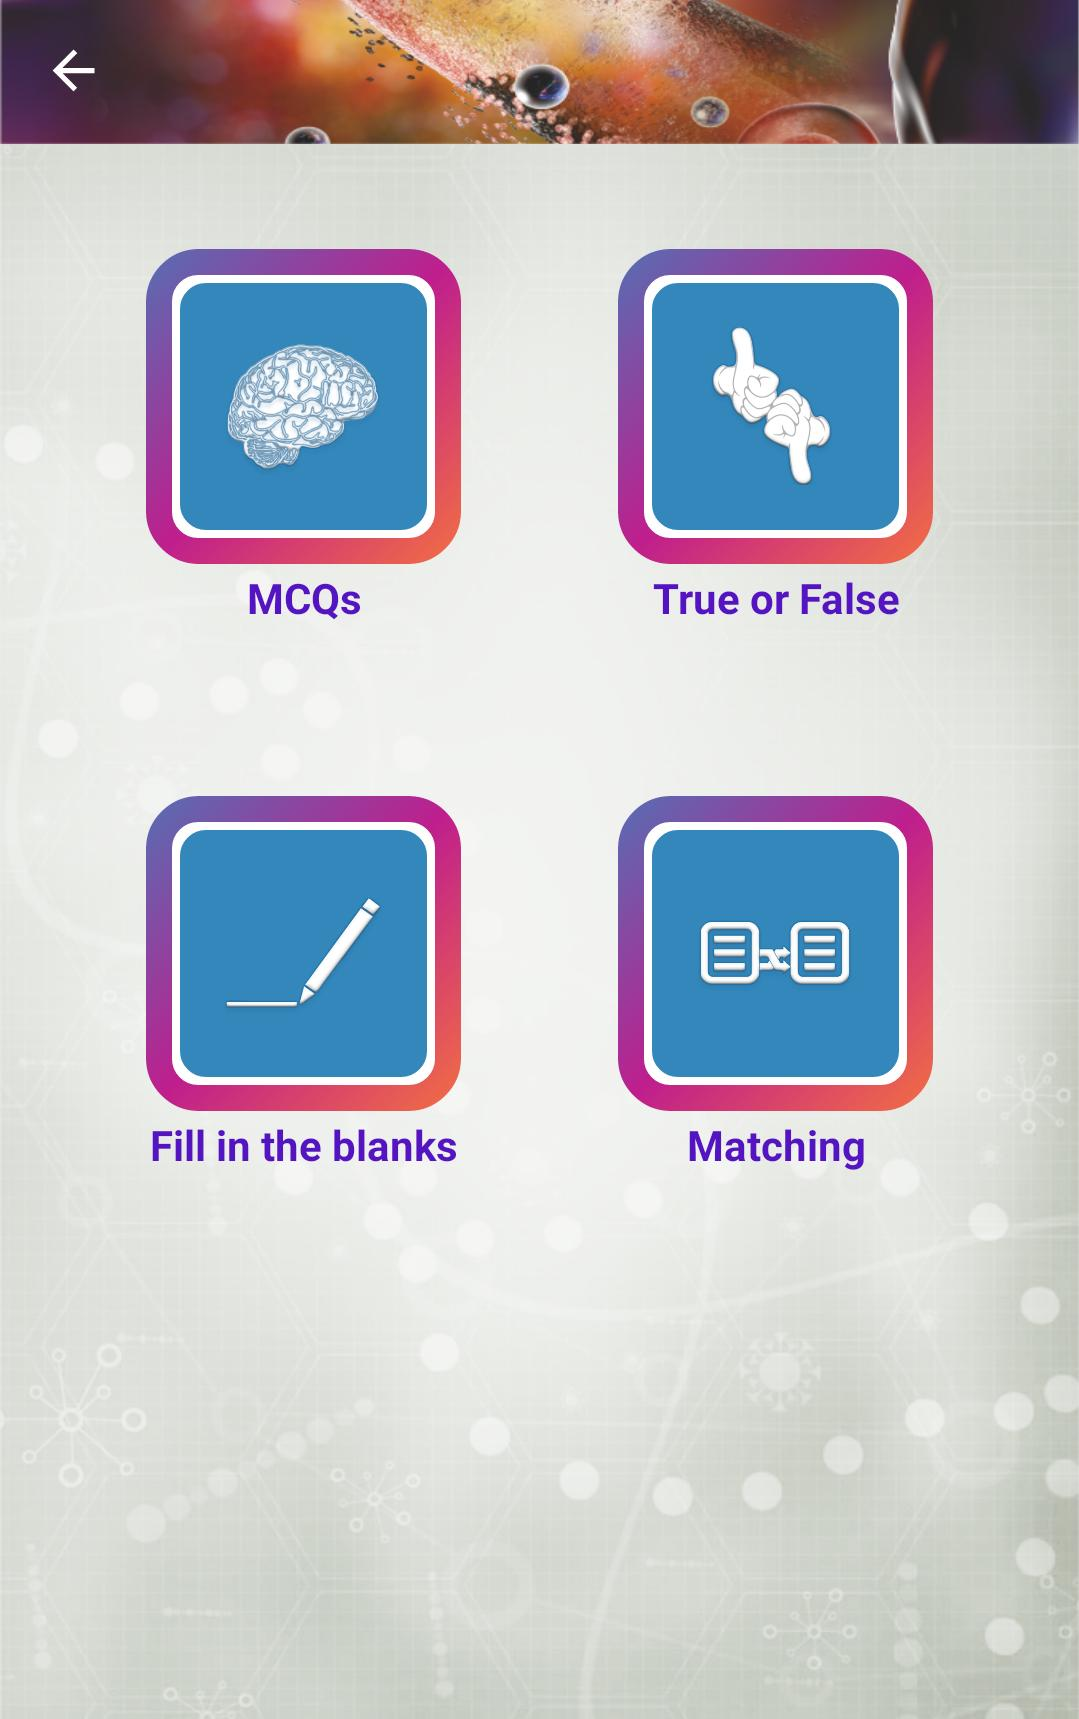 ICSE Biology (Class 7) for Android - APK Download